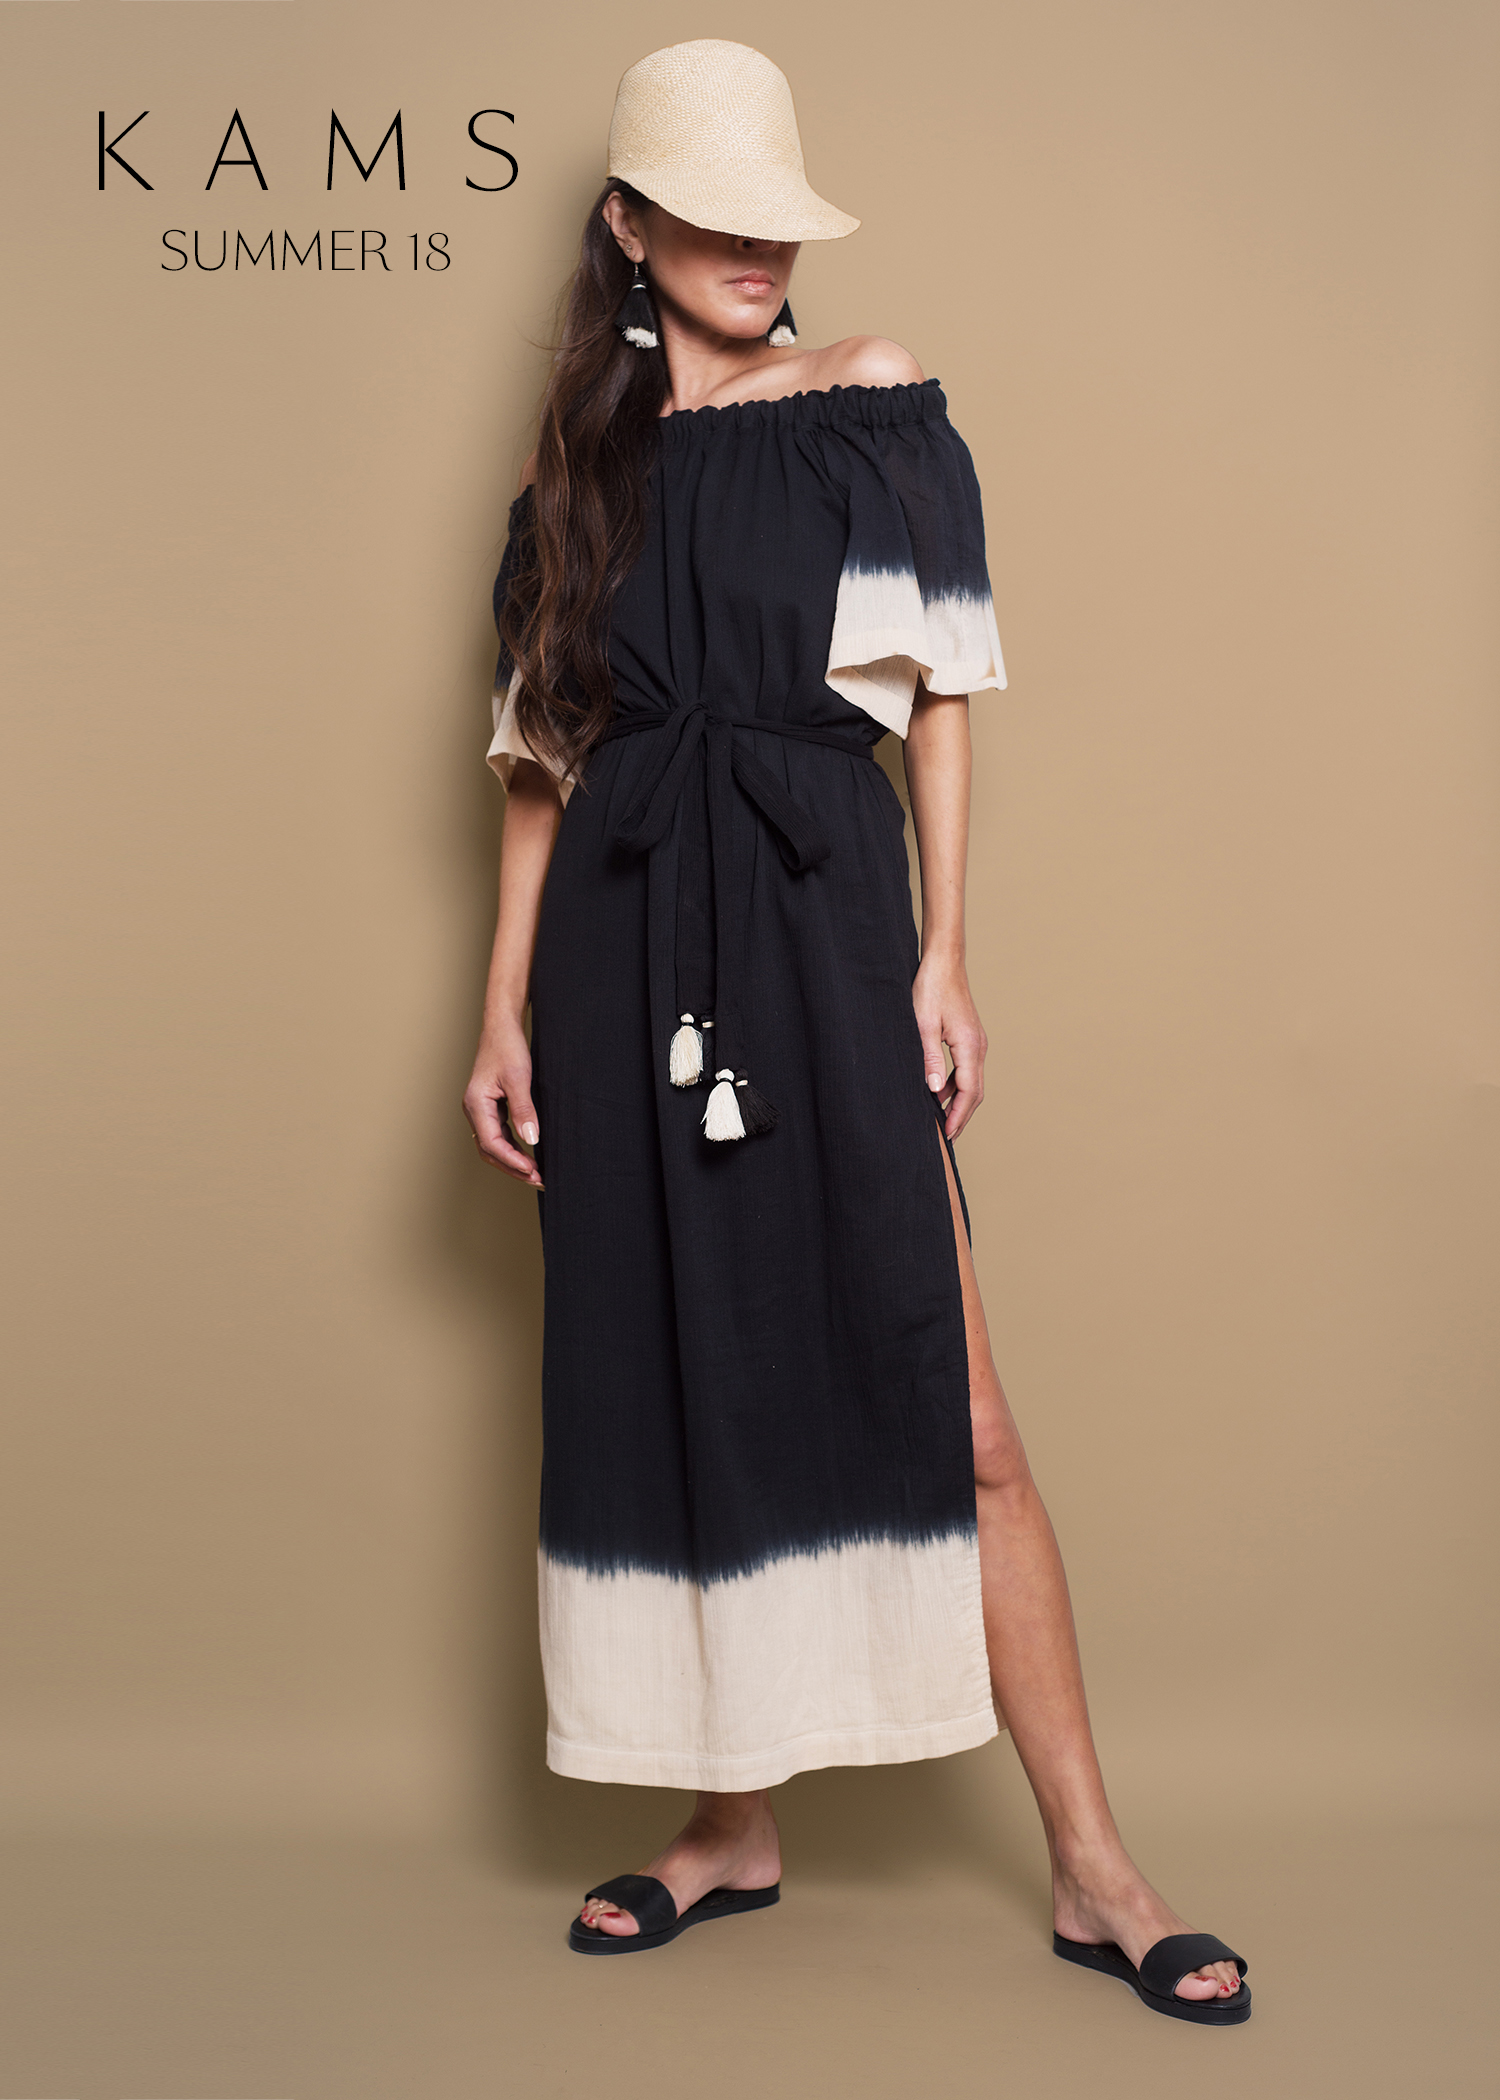 An easy gauze dress - From our house collection, KAMS, the Serena dress is a breeze. Lightweight, airy, thrown on and done.